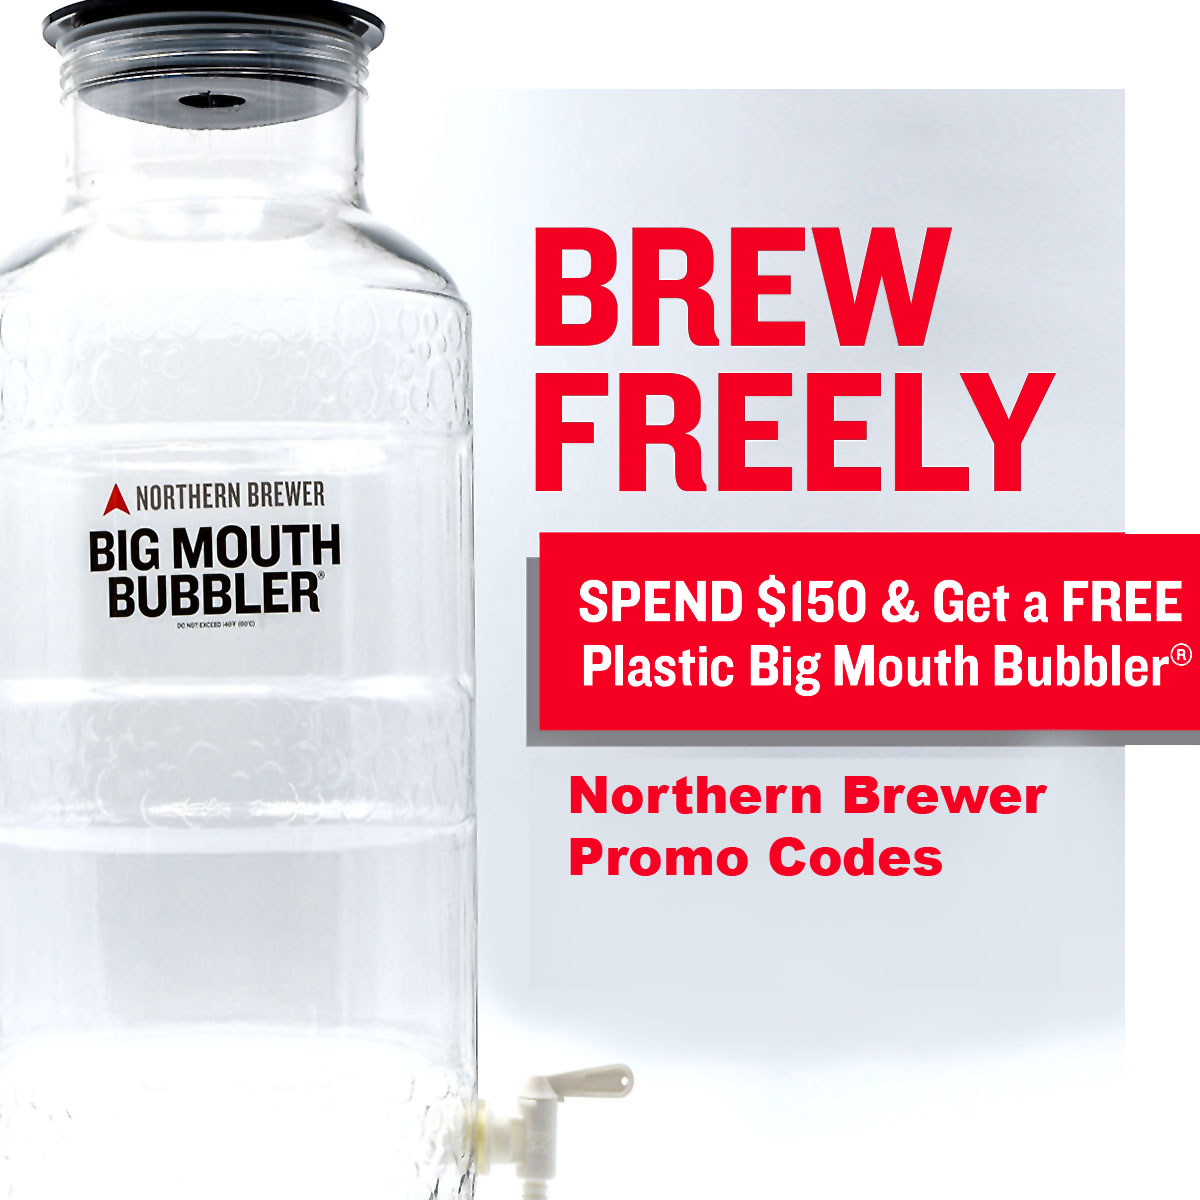 Northern Brewer Spend $150 and Get a FREE Big Mouth Fermenter Coupon Code For Northern Brewer Coupon Code